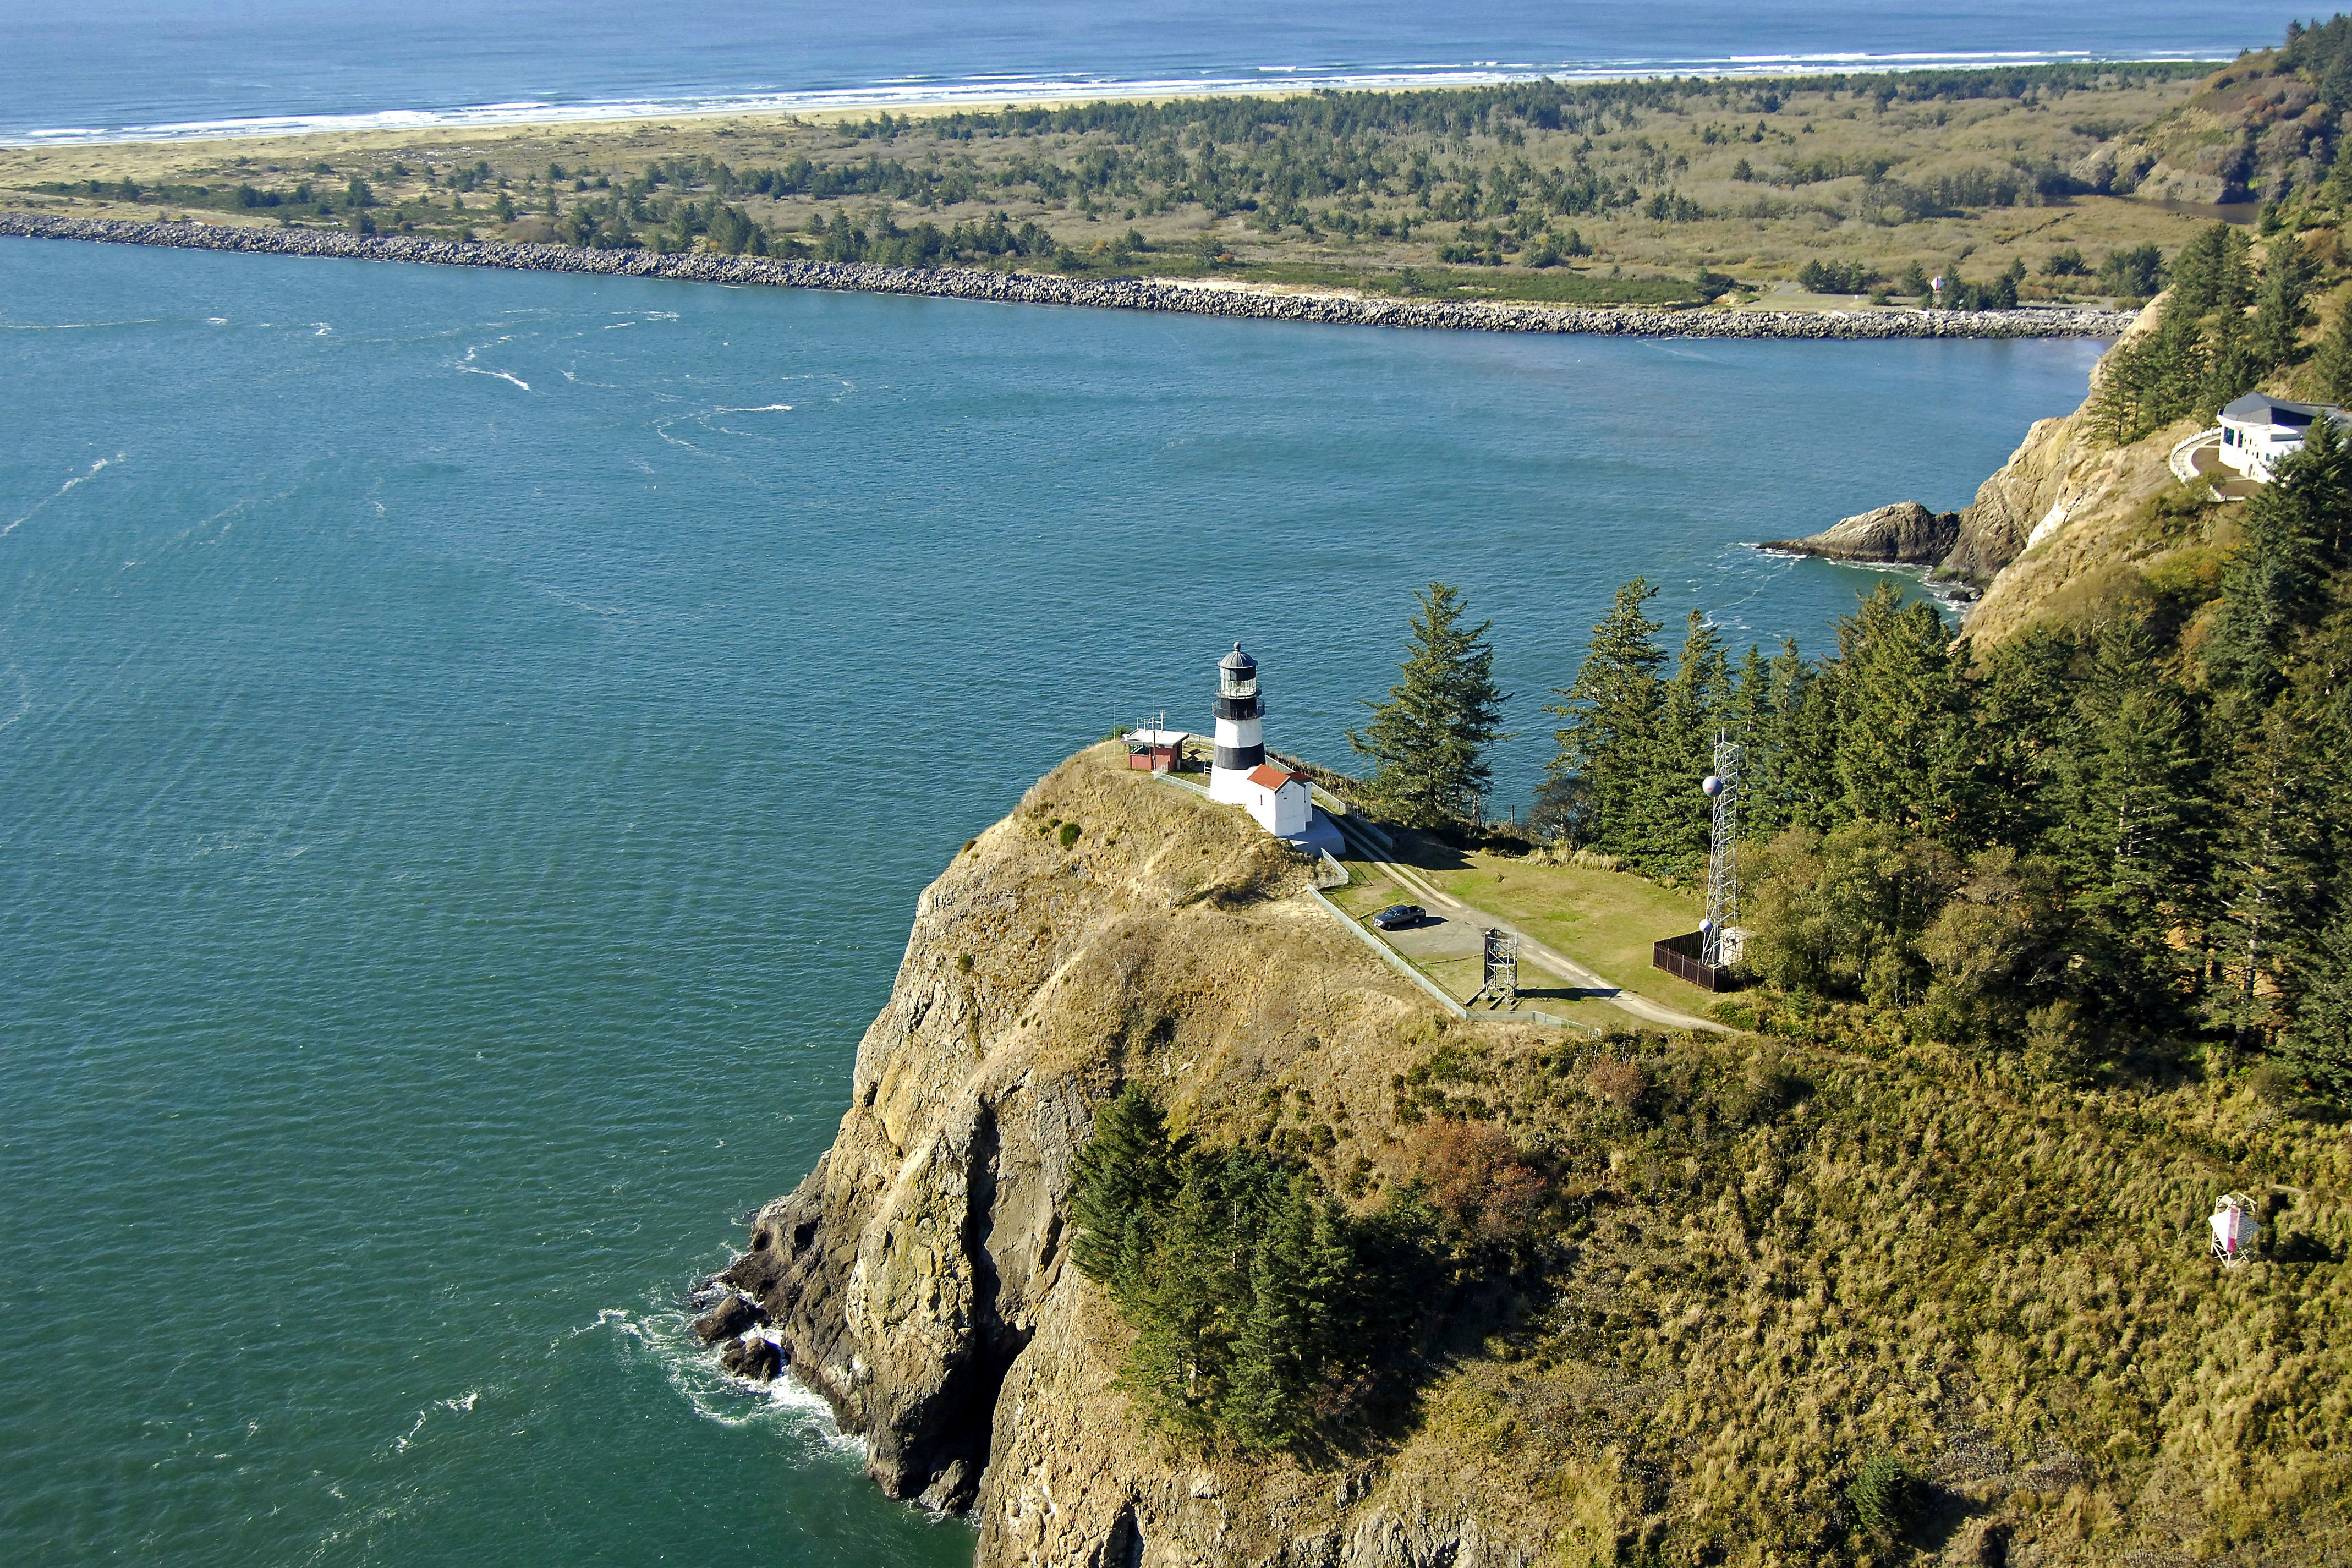 Cape Disappointment Light Lighthouse In Ilwaco Wa United